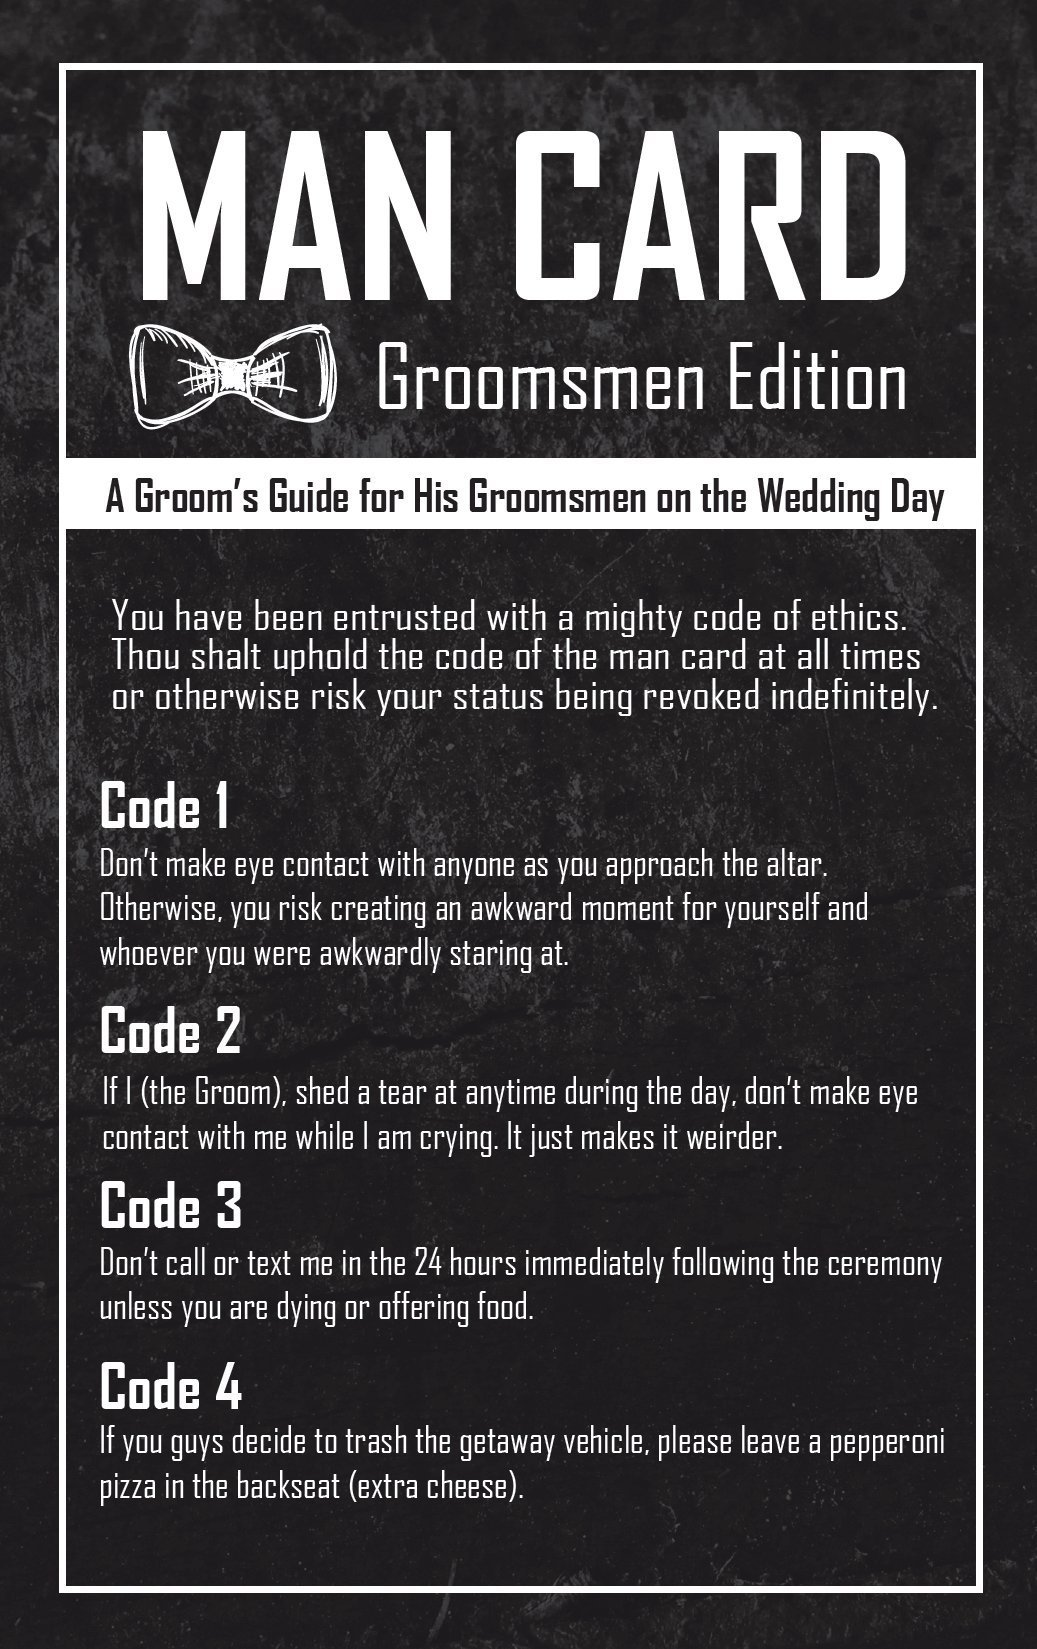 Groomsmen Gifts For Wedding - The Man Card - Groomsmen Edition 6-Pack by Wannabe Genius (Image #1)